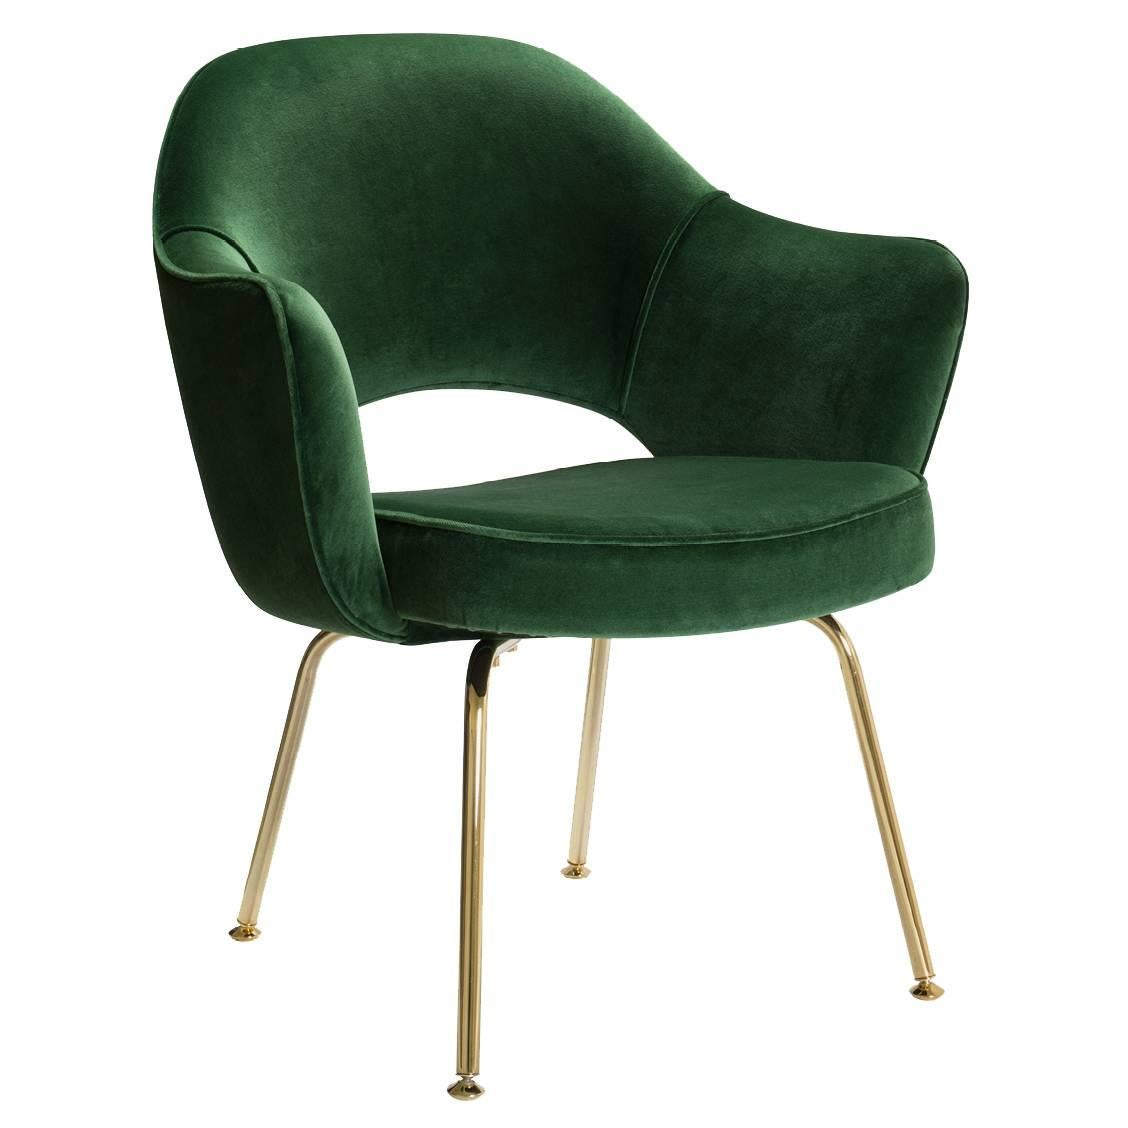 Chair Saarinen Saarinen Executive Arm Chairs In Crème Leather Swivel Base 24k Gold Edition